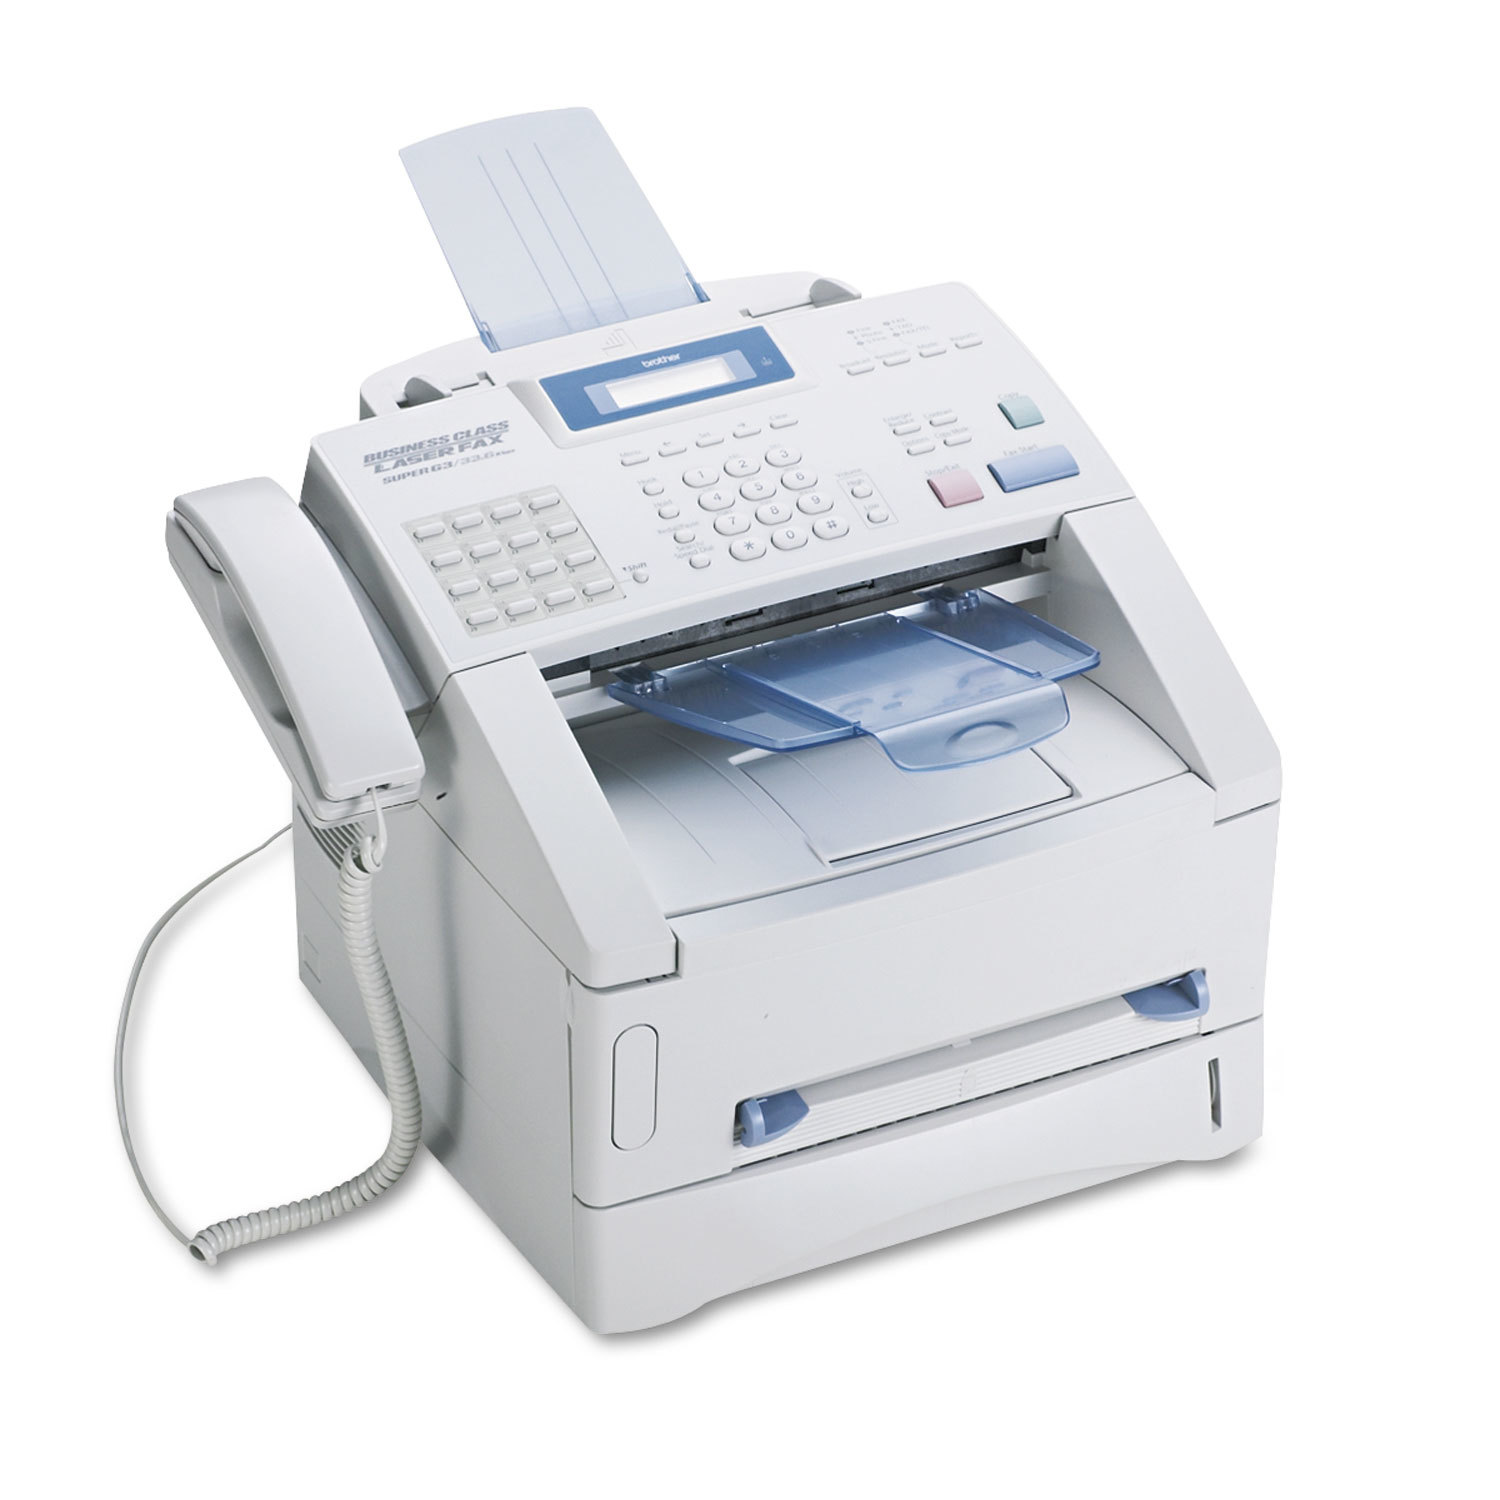 Fax Service and Support